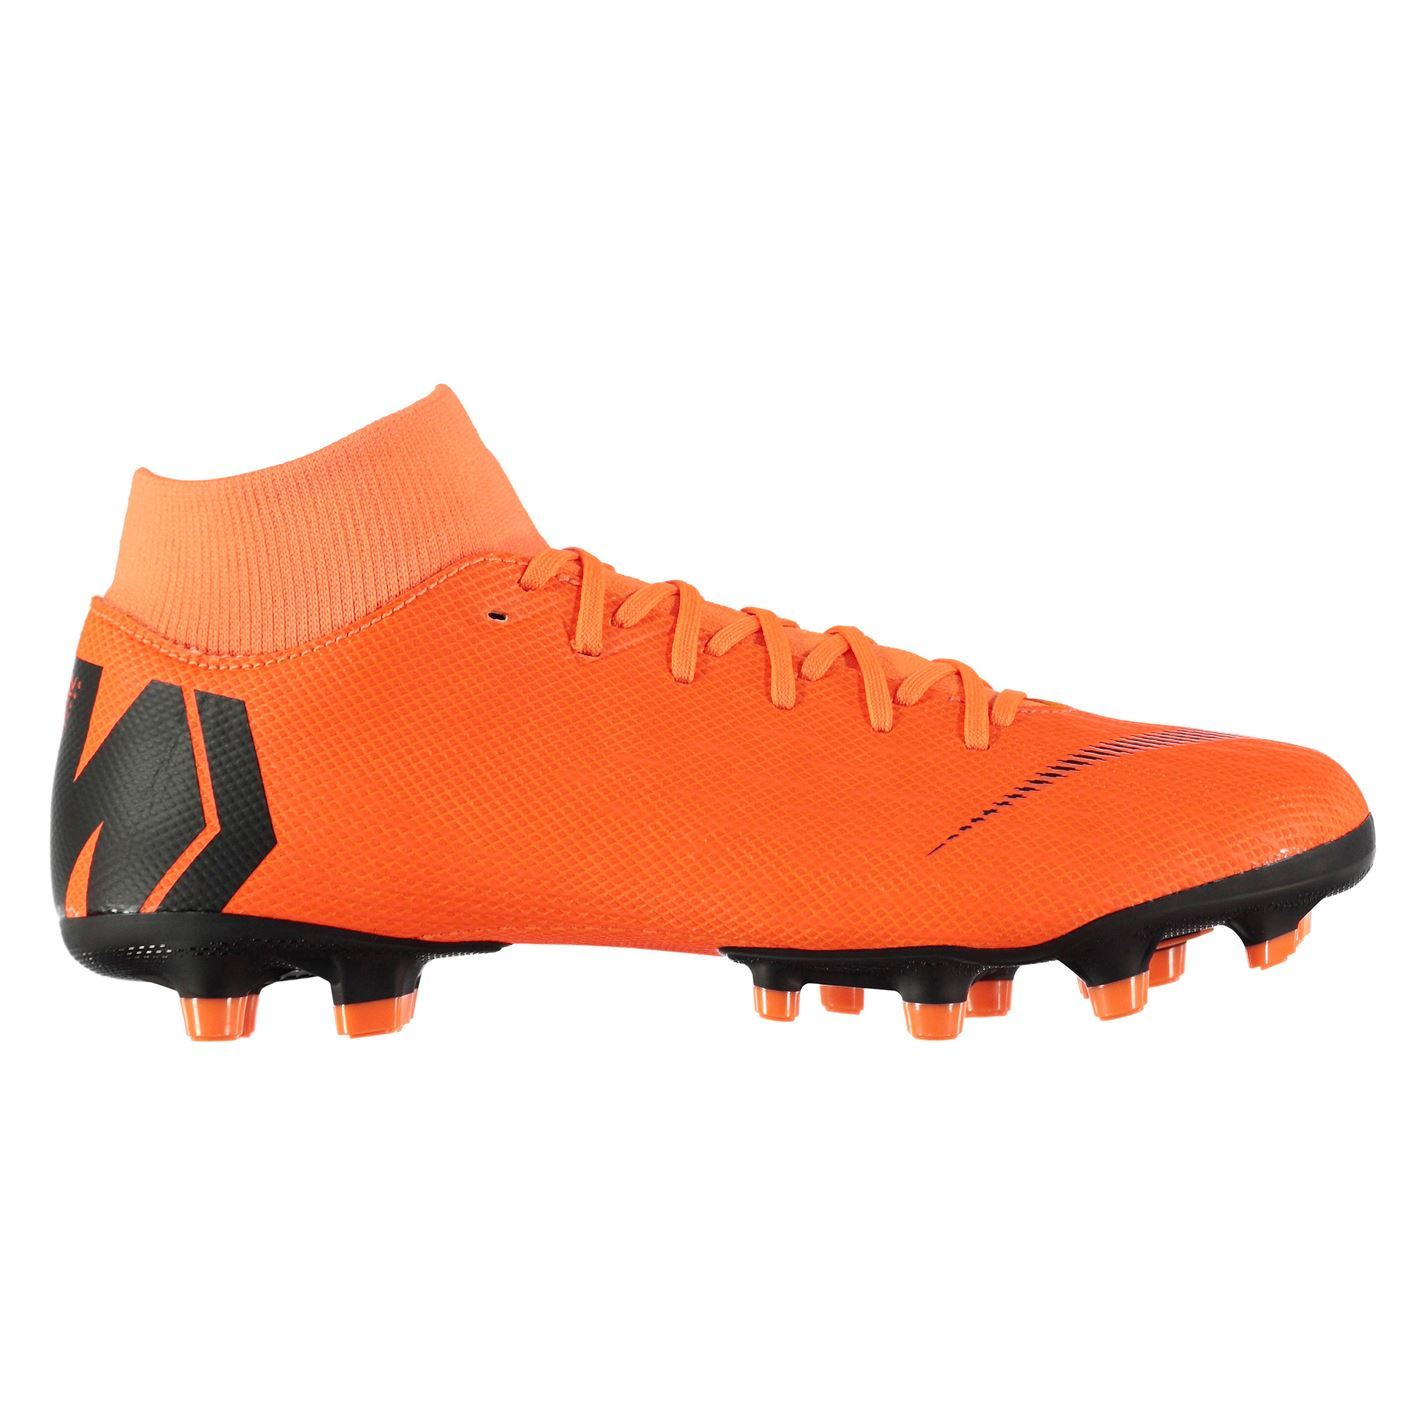 Details about Nike Mercurial Superfly Academy Firm Ground Football Boots Mens Or Soccer Cleat